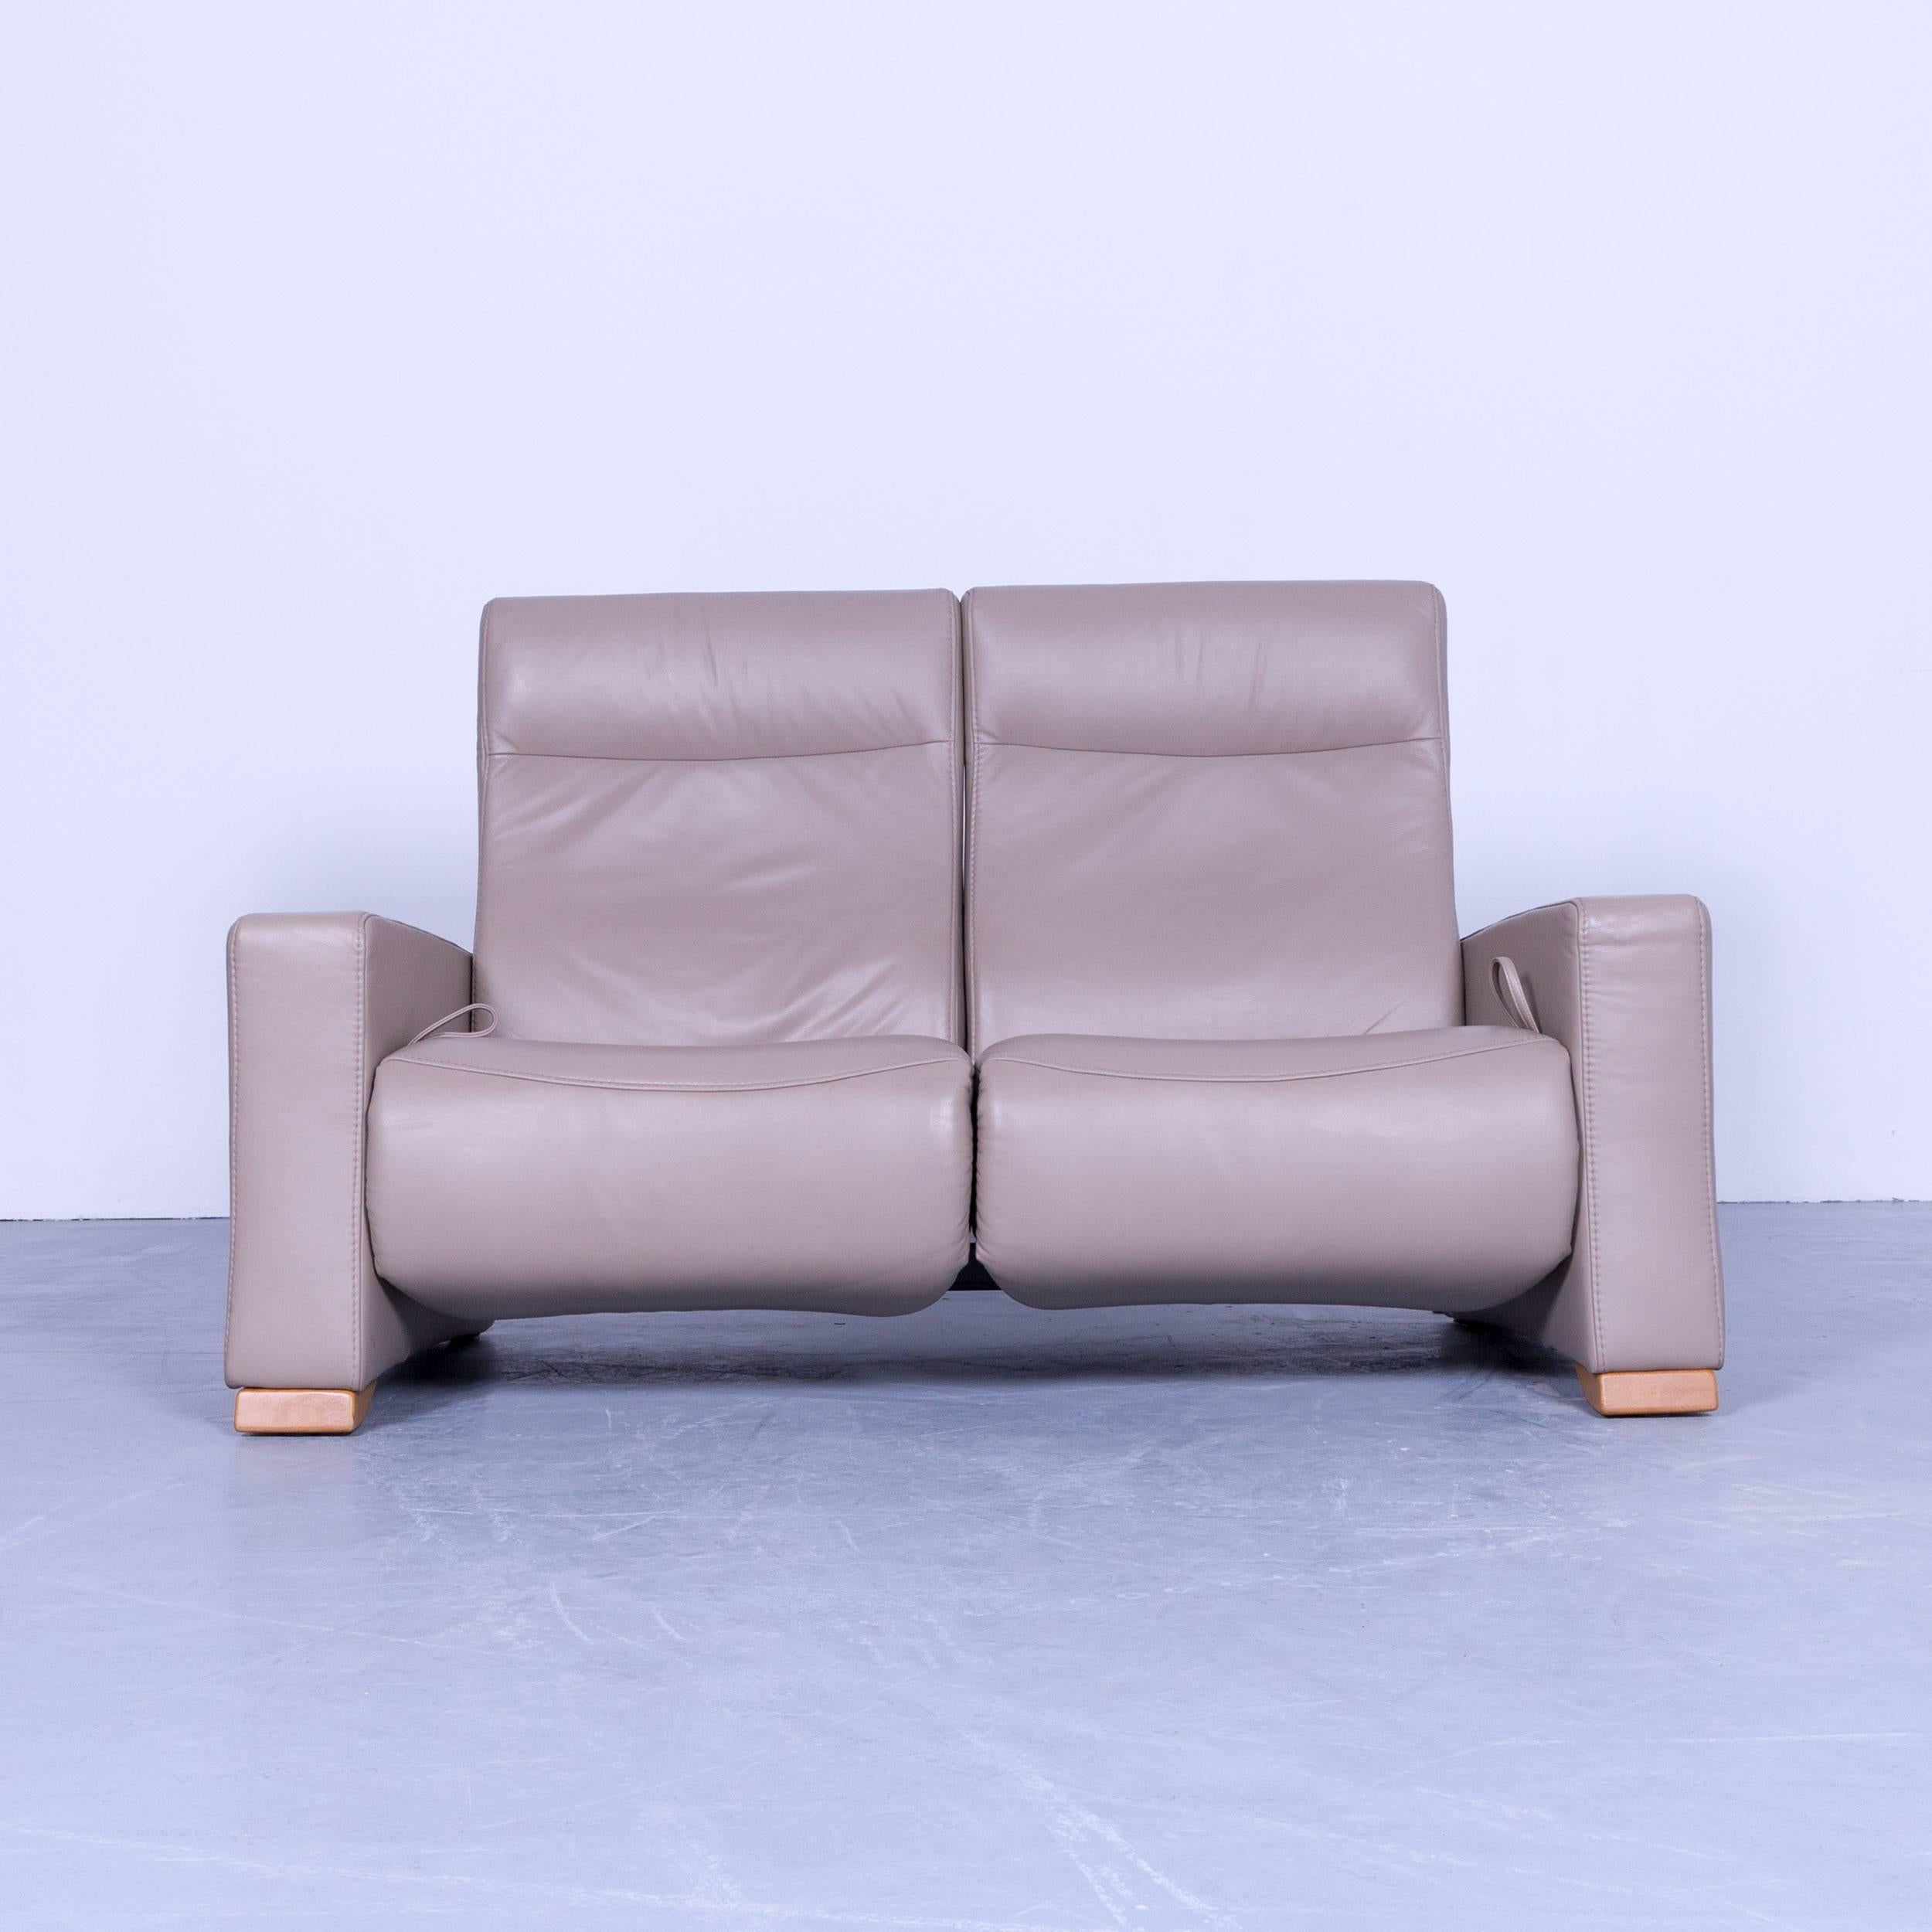 Relax Sofa Himolla Designer Relax Sofa Leather Beige Crème Two Seat Couch Germany Modern